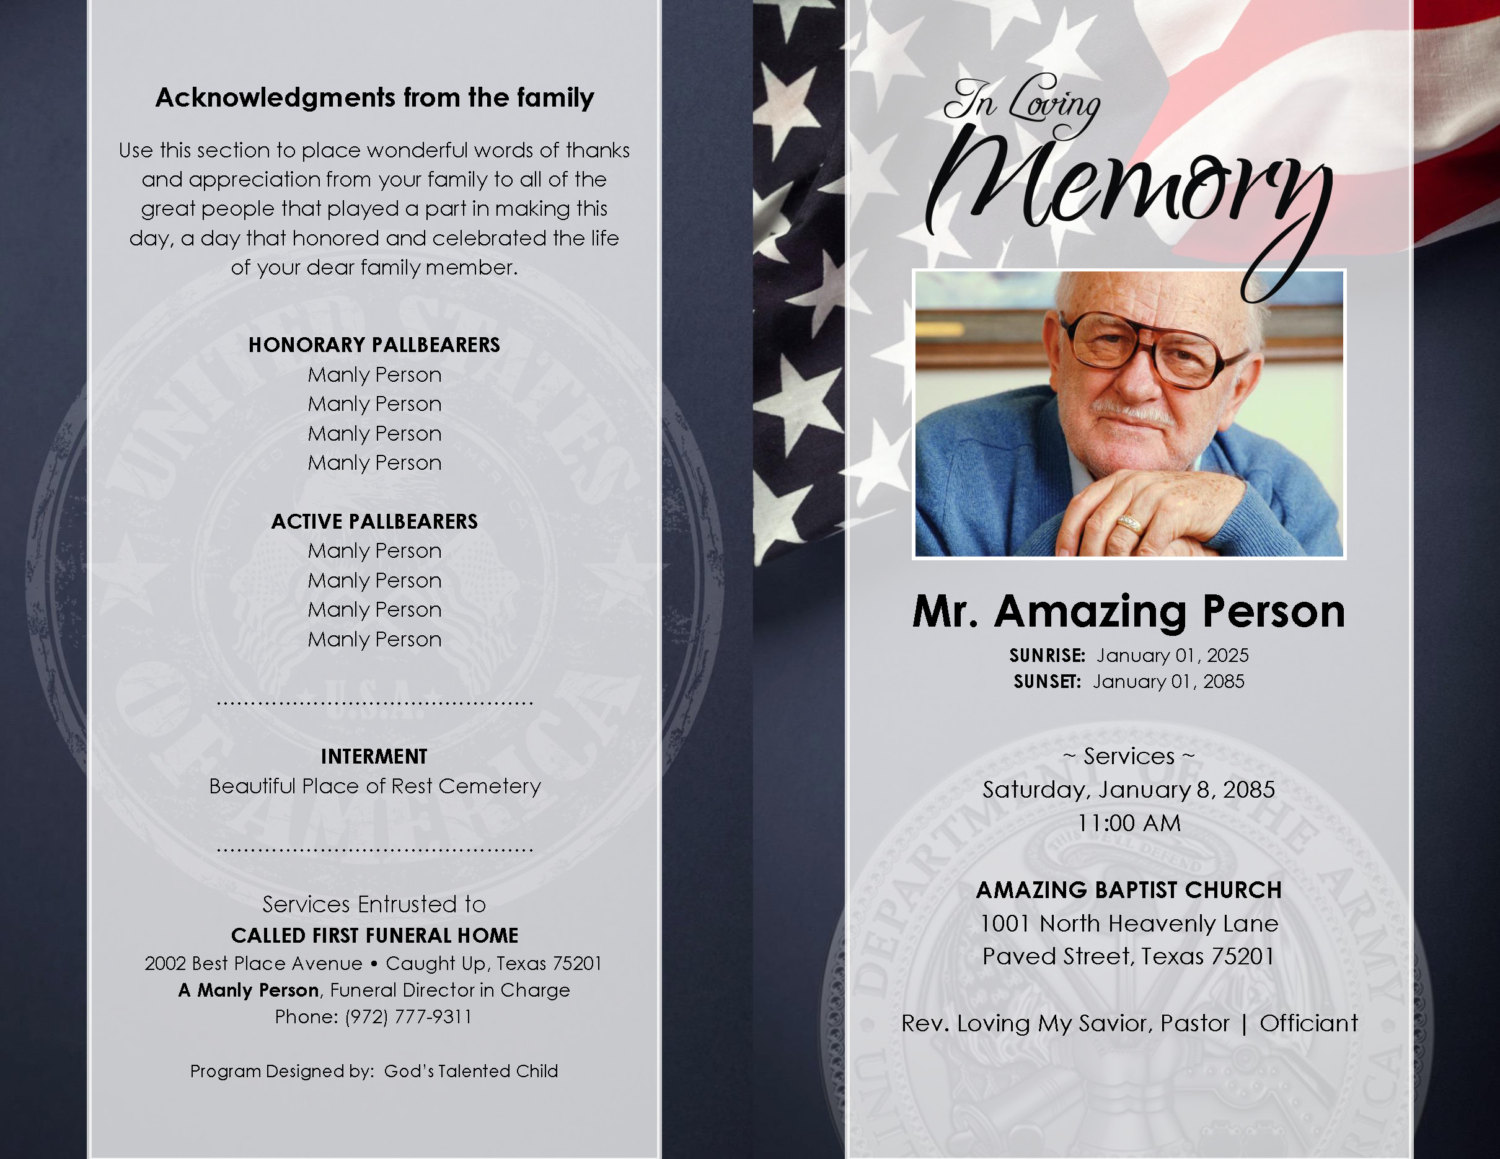 Delighted Funeral Booklet Template Free Photos - Entry Level Resume ...